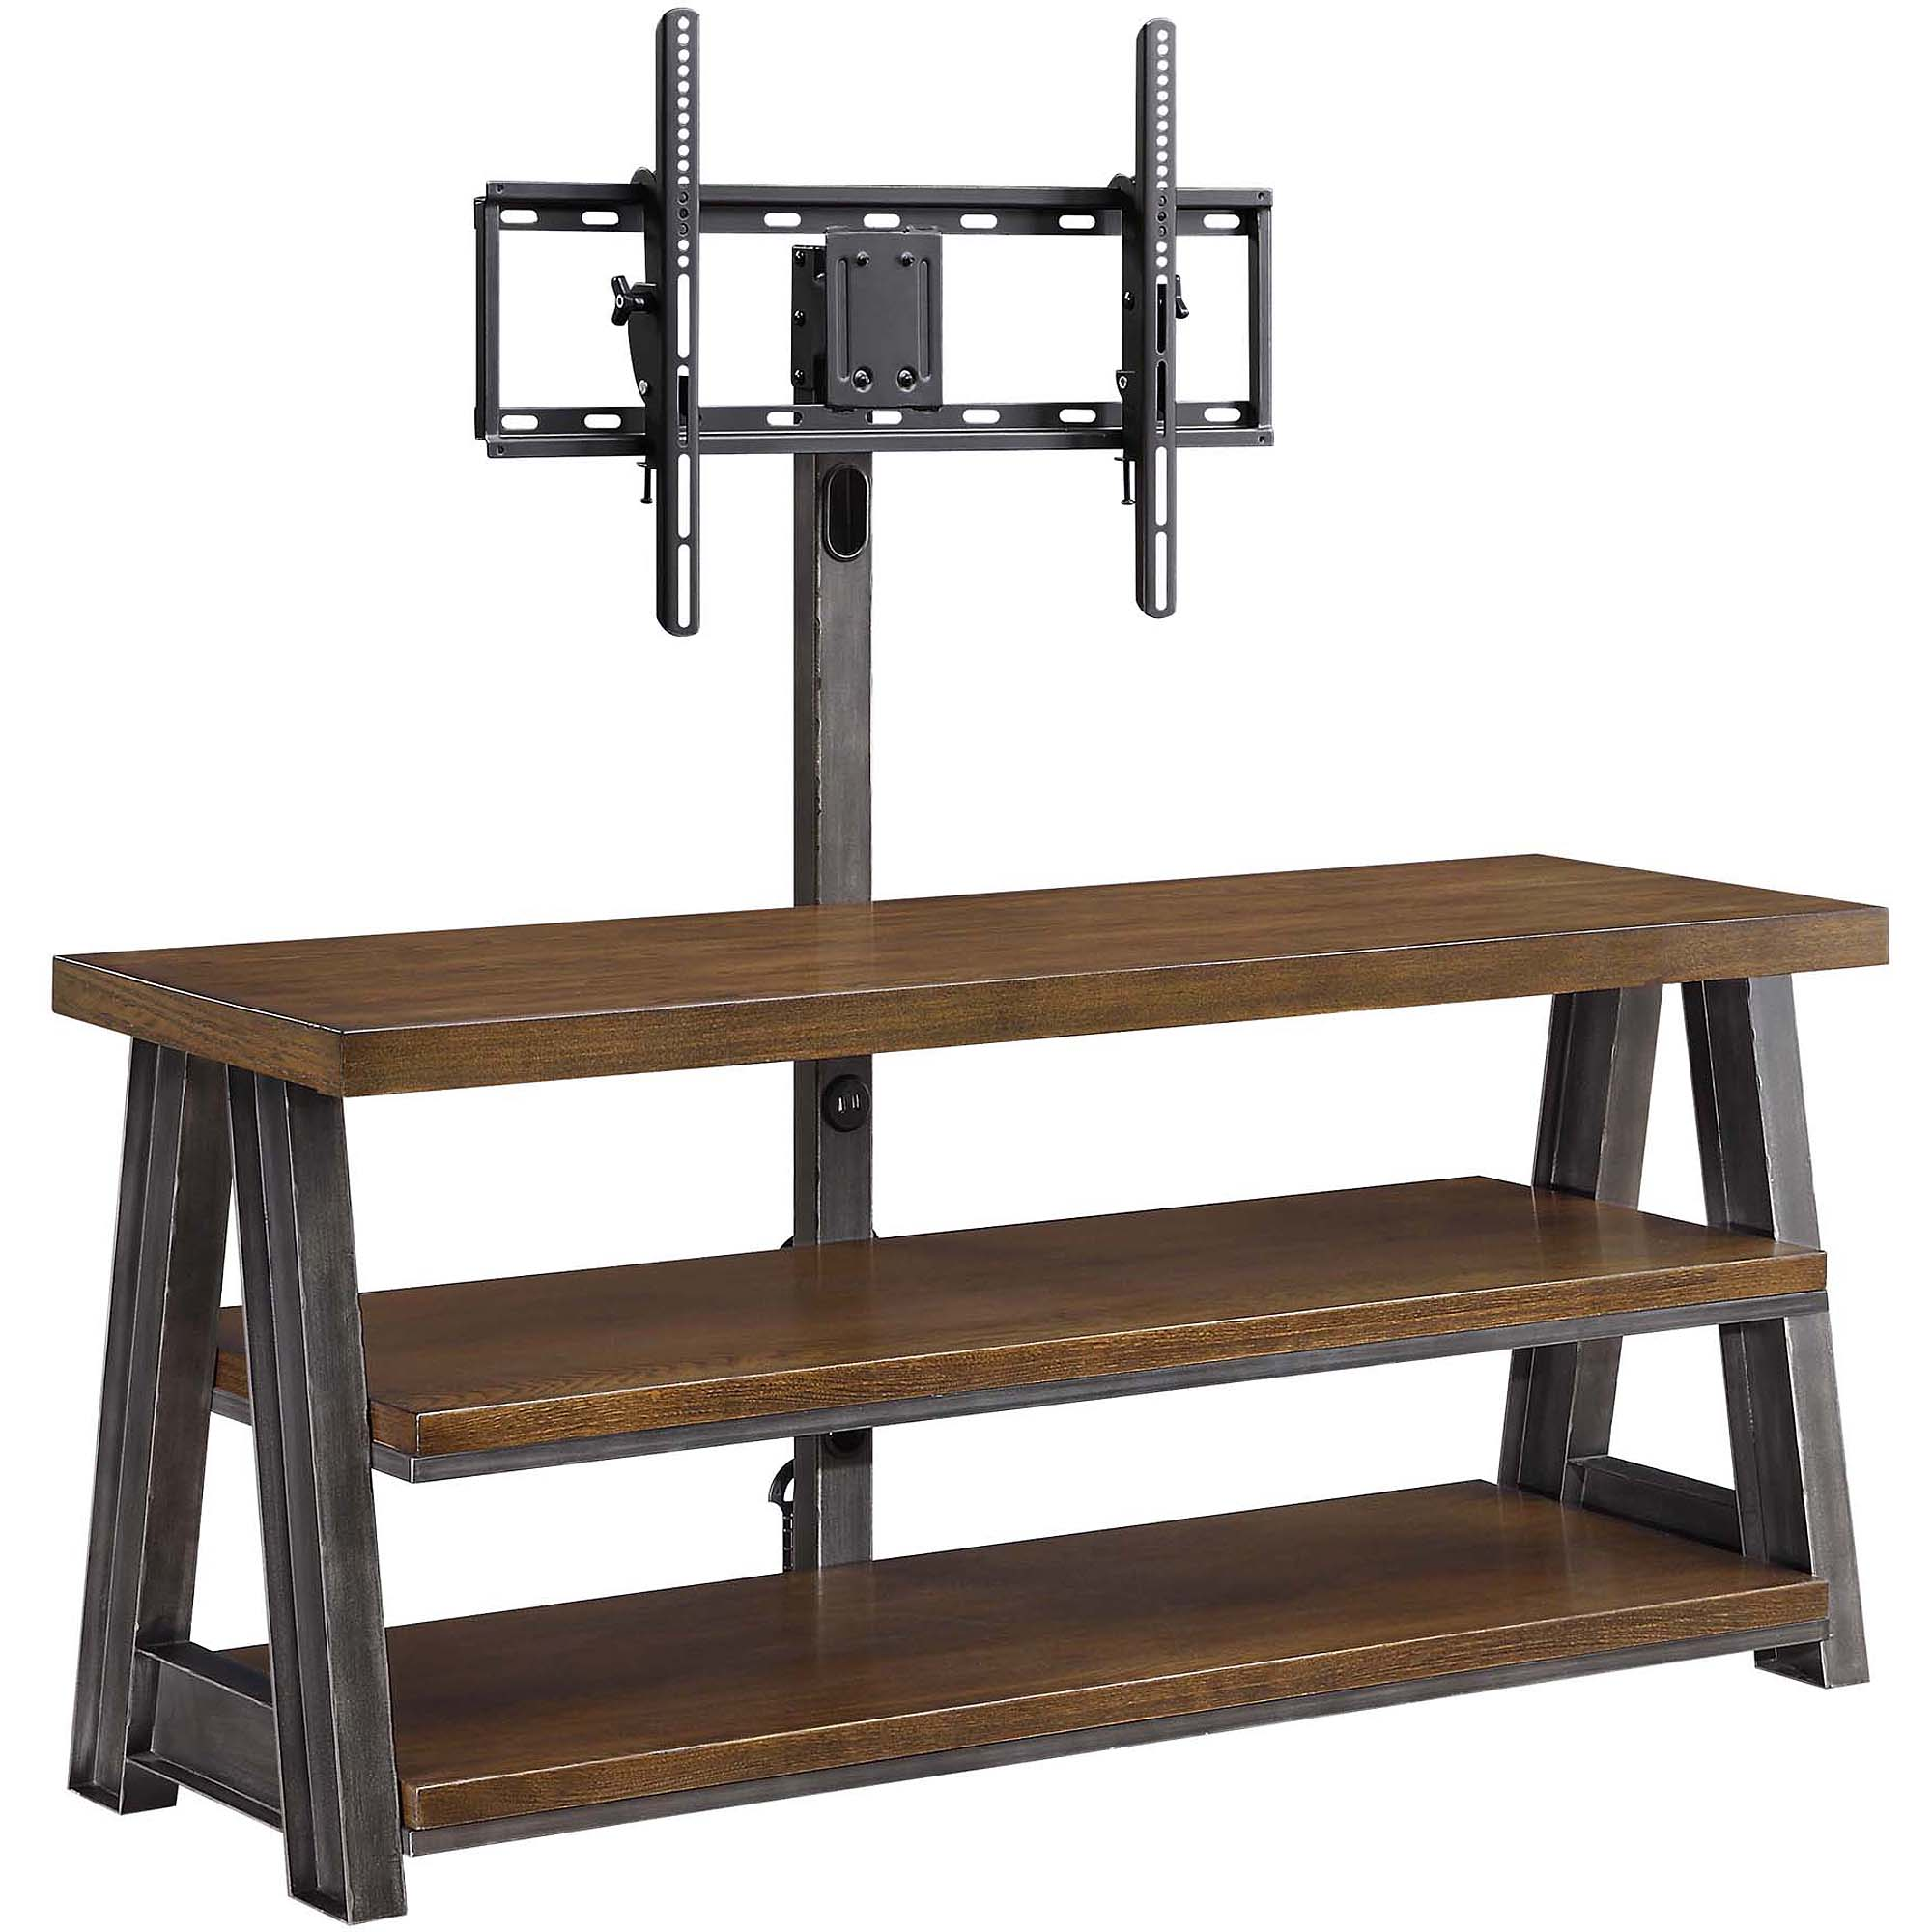 Exquisite whalen tv stand for furniture accessories design with whalen 3-in-1 tv stand